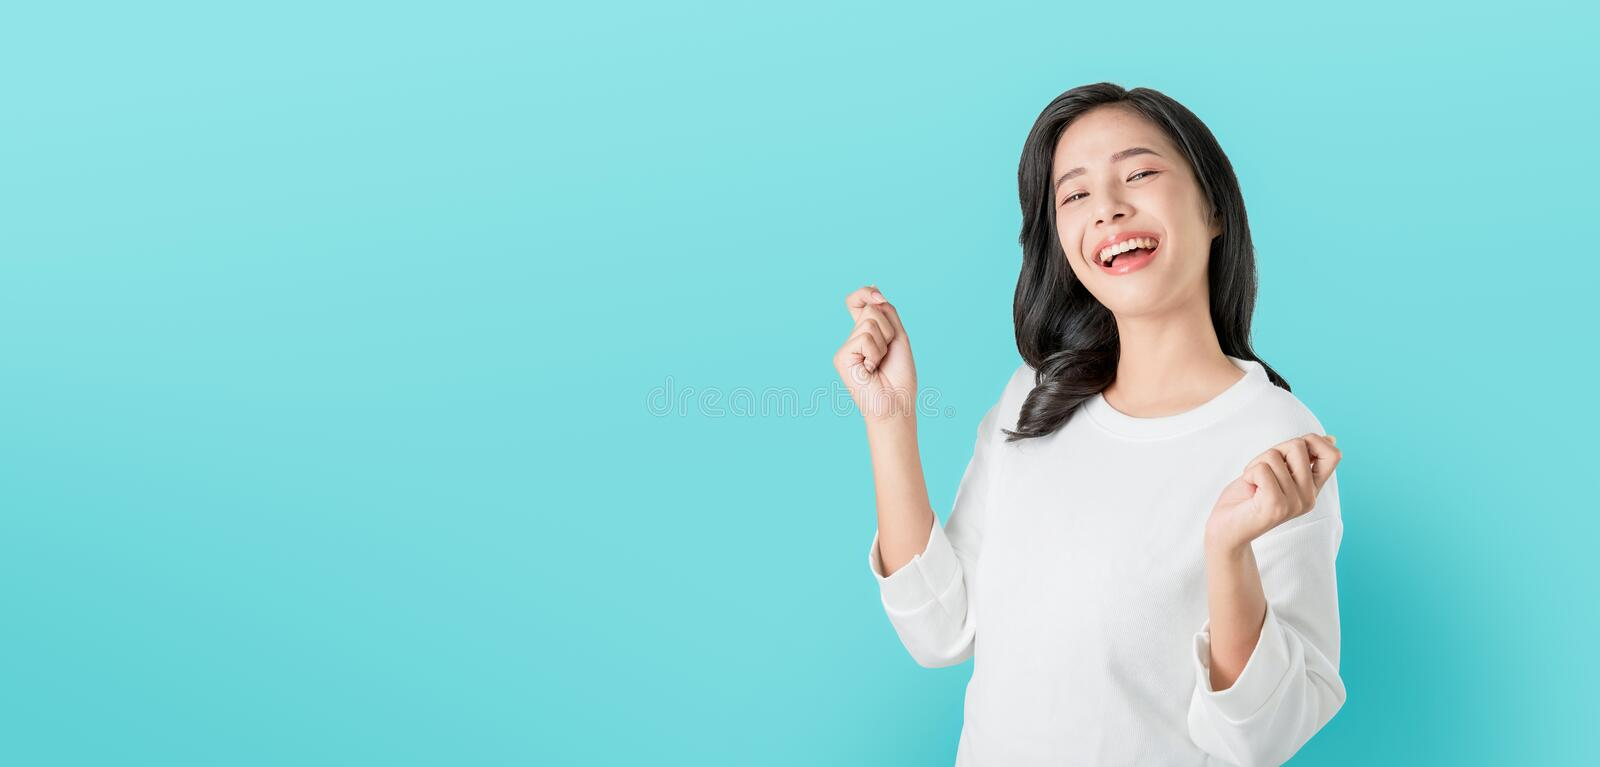 Cheerful beautiful Asian woman in casual white t-shirt and happy face smile on blue background. royalty free stock image